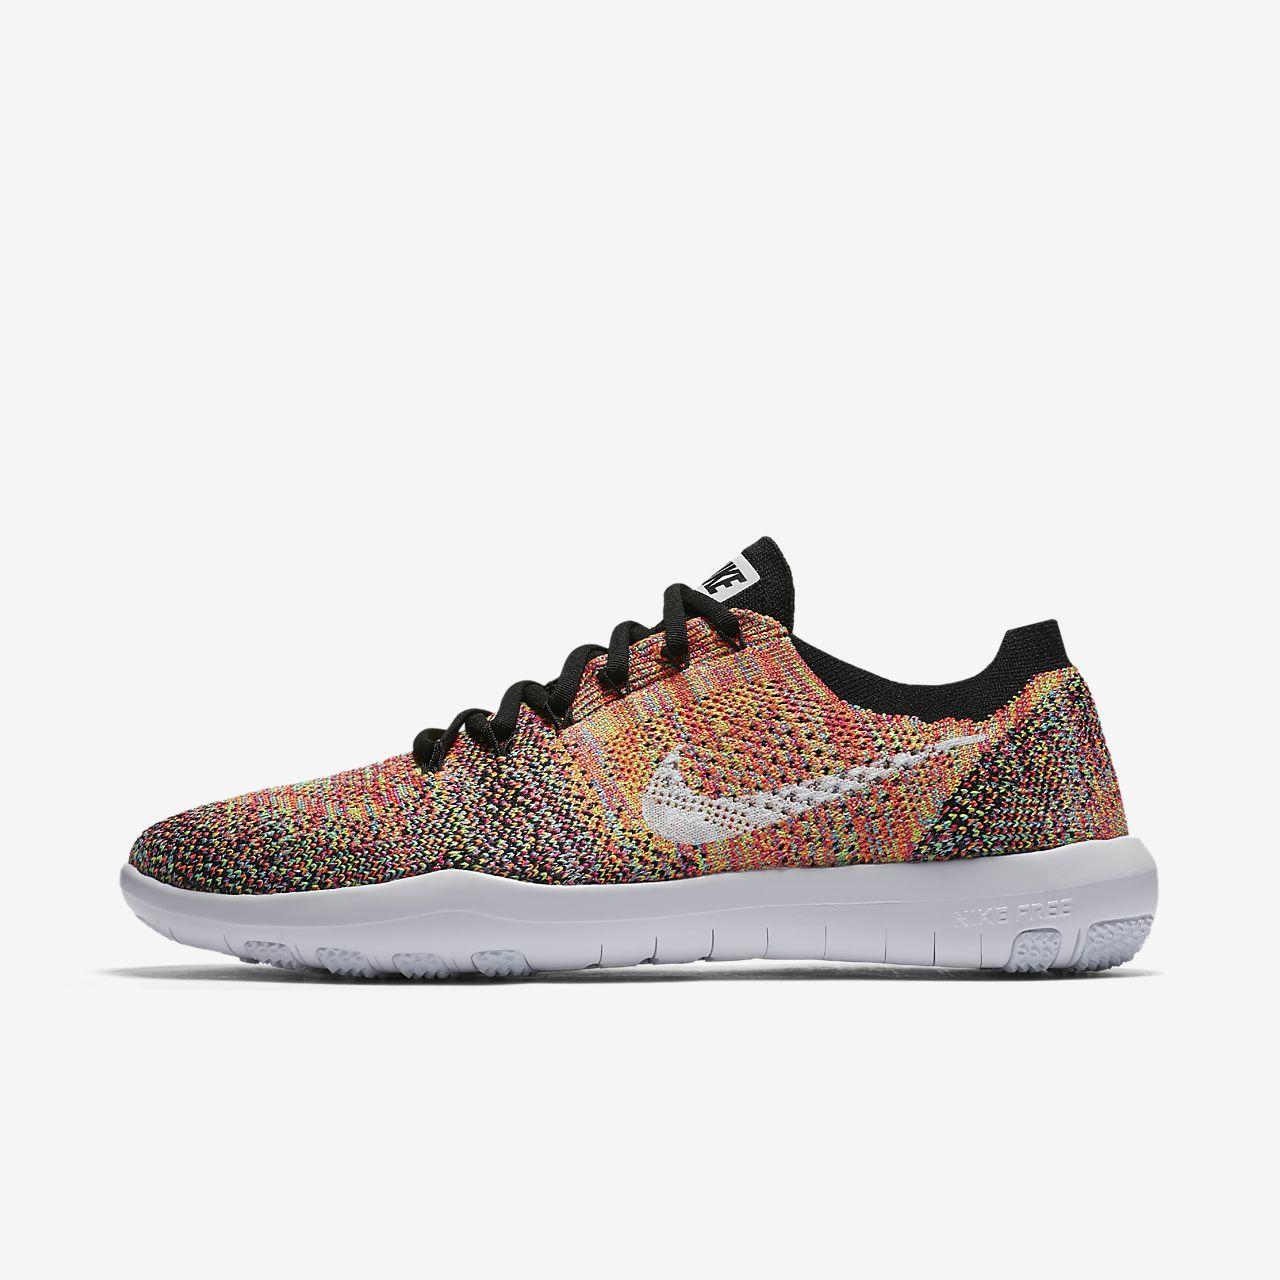 nike free focus flyknit 2 women 39 s training shoe. Black Bedroom Furniture Sets. Home Design Ideas